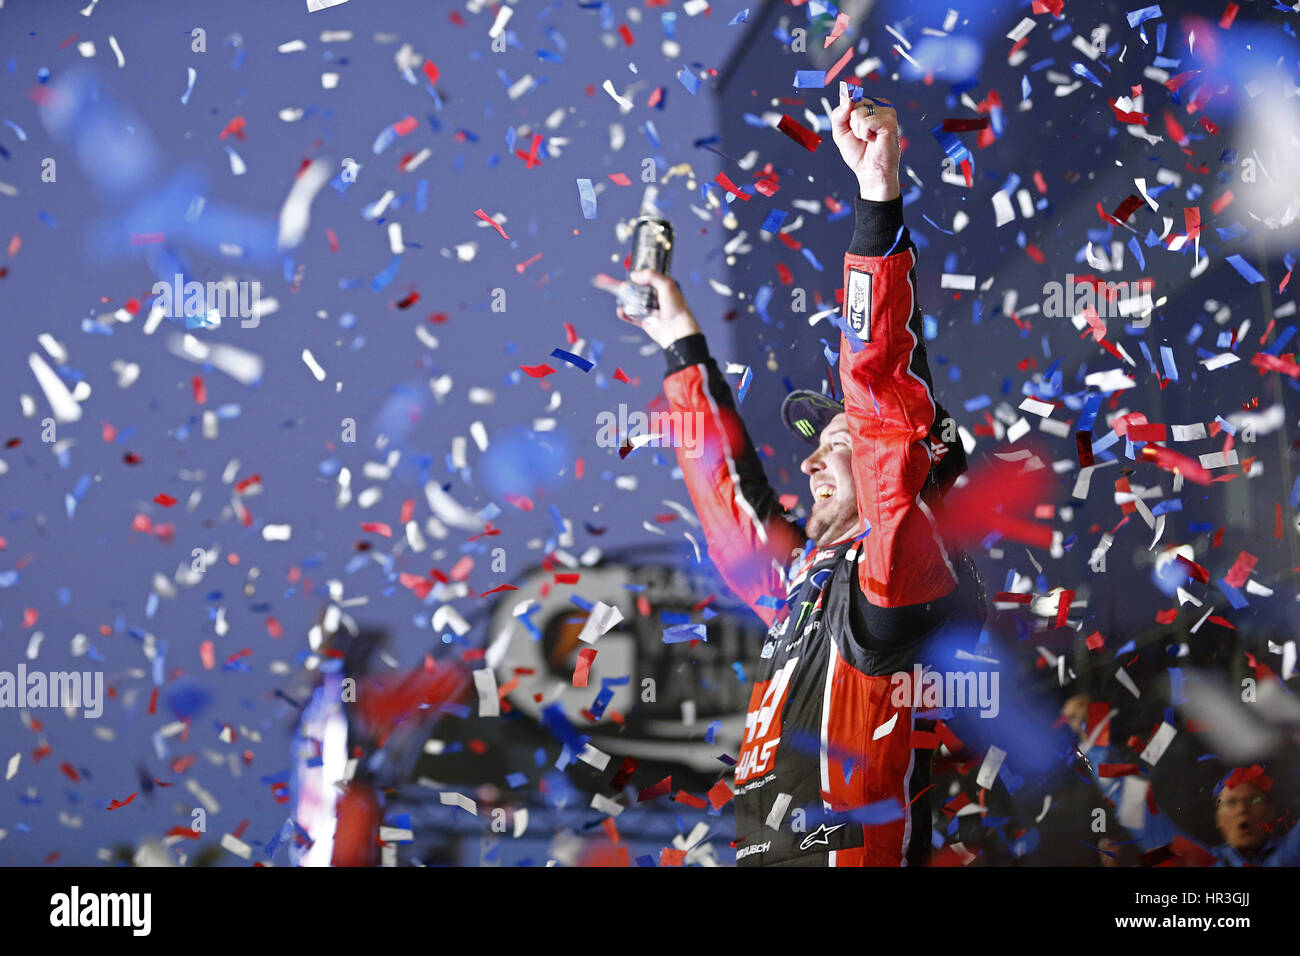 Daytona Beach, Florida, Estados Unidos. 26 Feb, 2017. Febrero 26, 2017 - Daytona Beach, Florida, EE.UU.: Kurt Busch Imagen De Stock